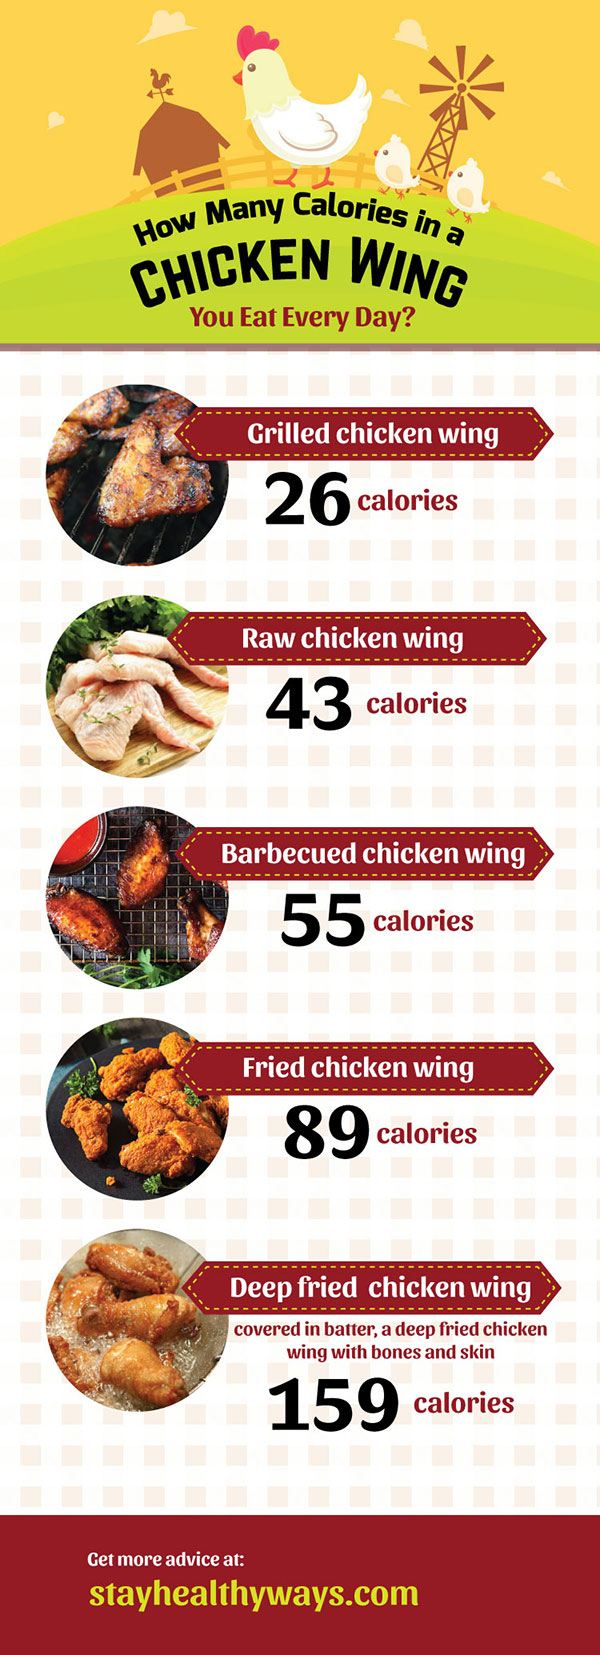 How Many Calories In A Chicken Wing You Eat Every Day?